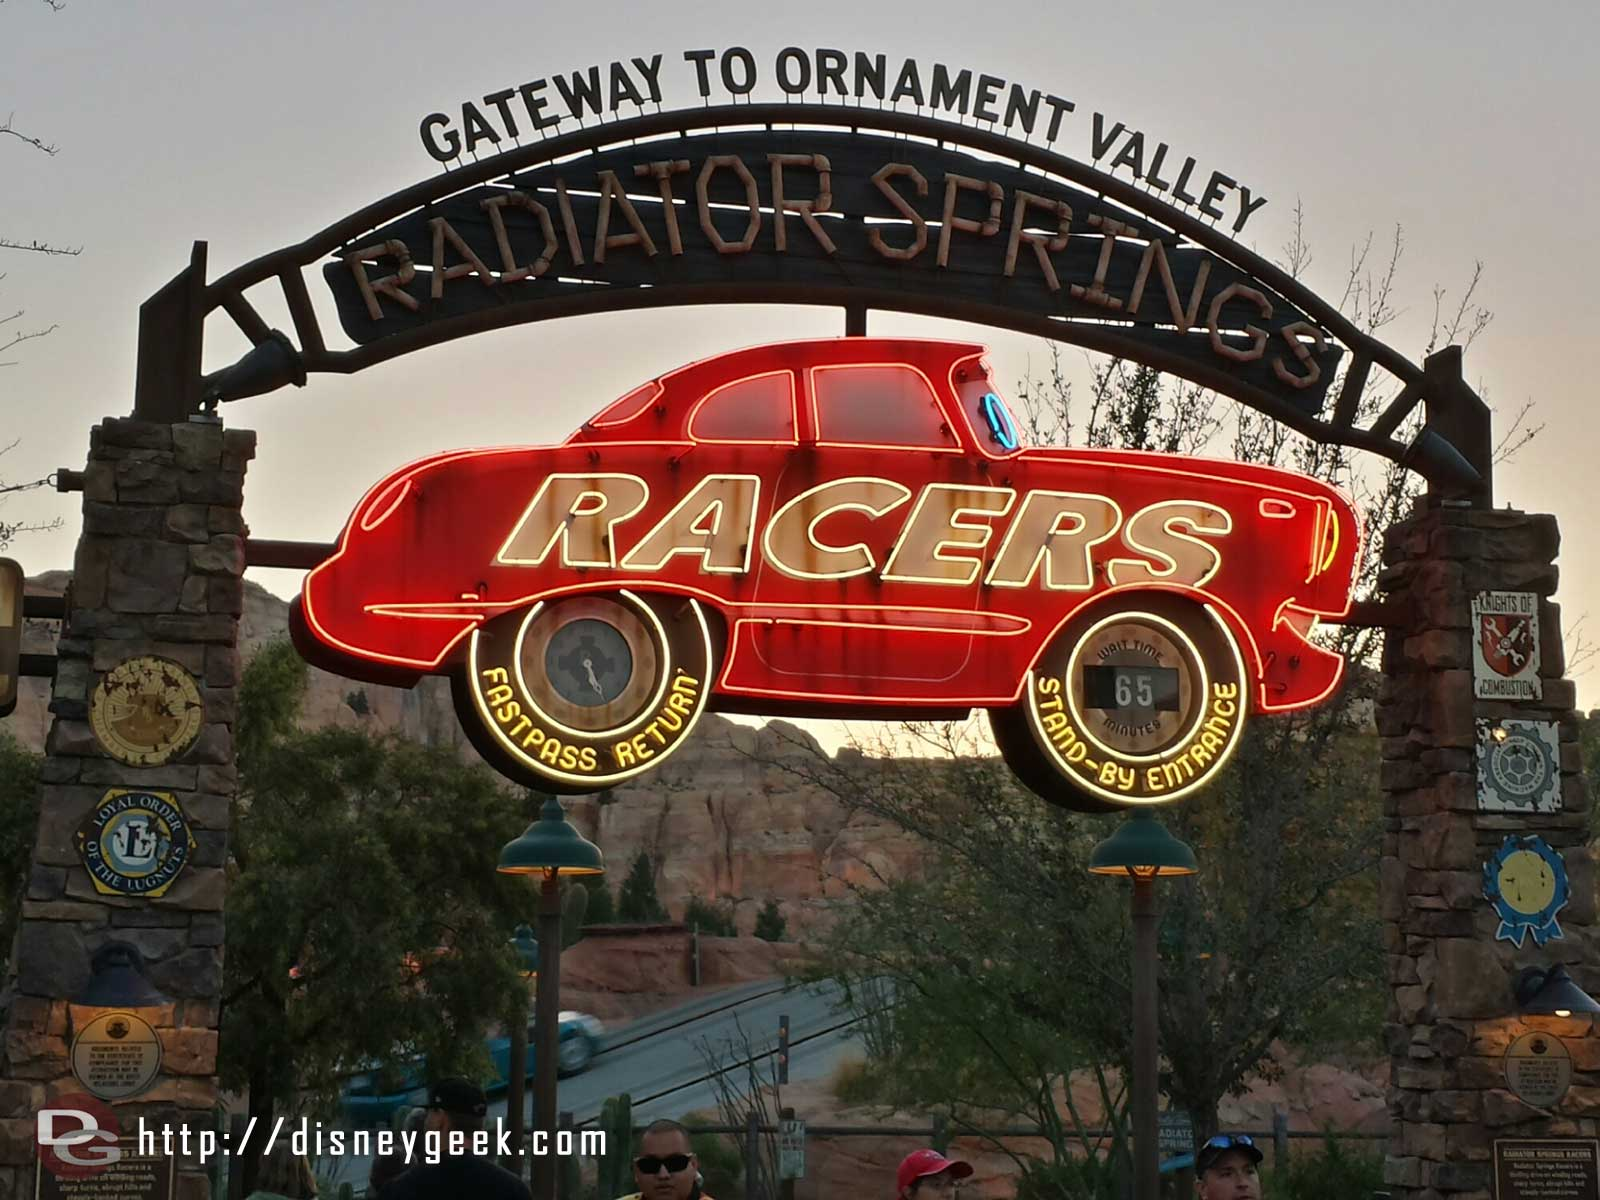 65min posted wait for the Radiator Springs Racers this evening #CarsLand